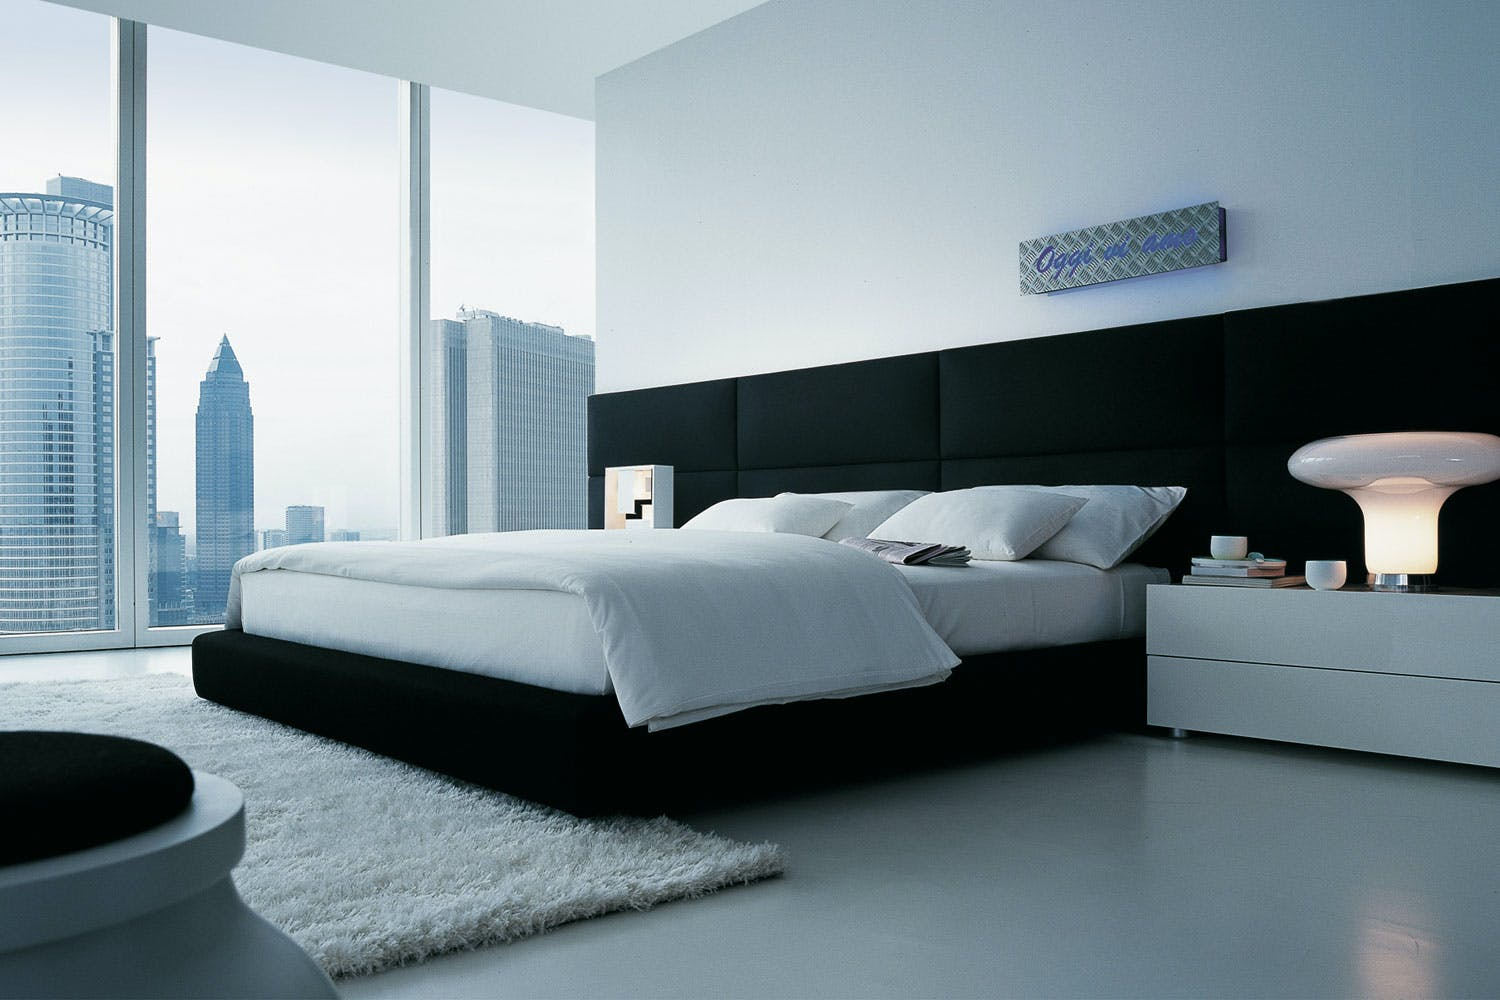 dream bed by marcel wanders for poliform space furniture. Black Bedroom Furniture Sets. Home Design Ideas